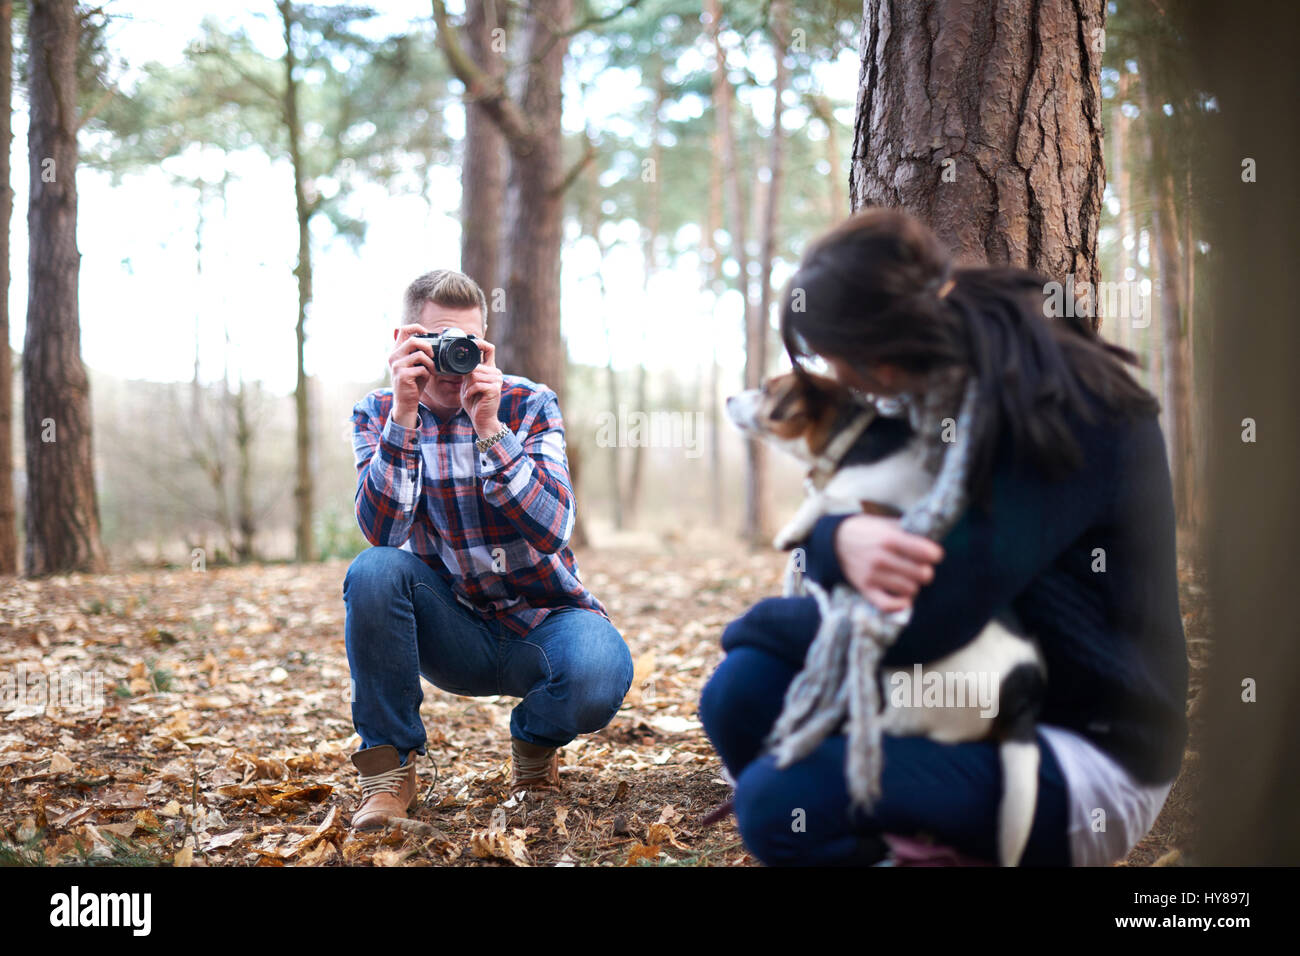 A man takes a photo of his female companion and her dog as they walk in the woods Stock Photo